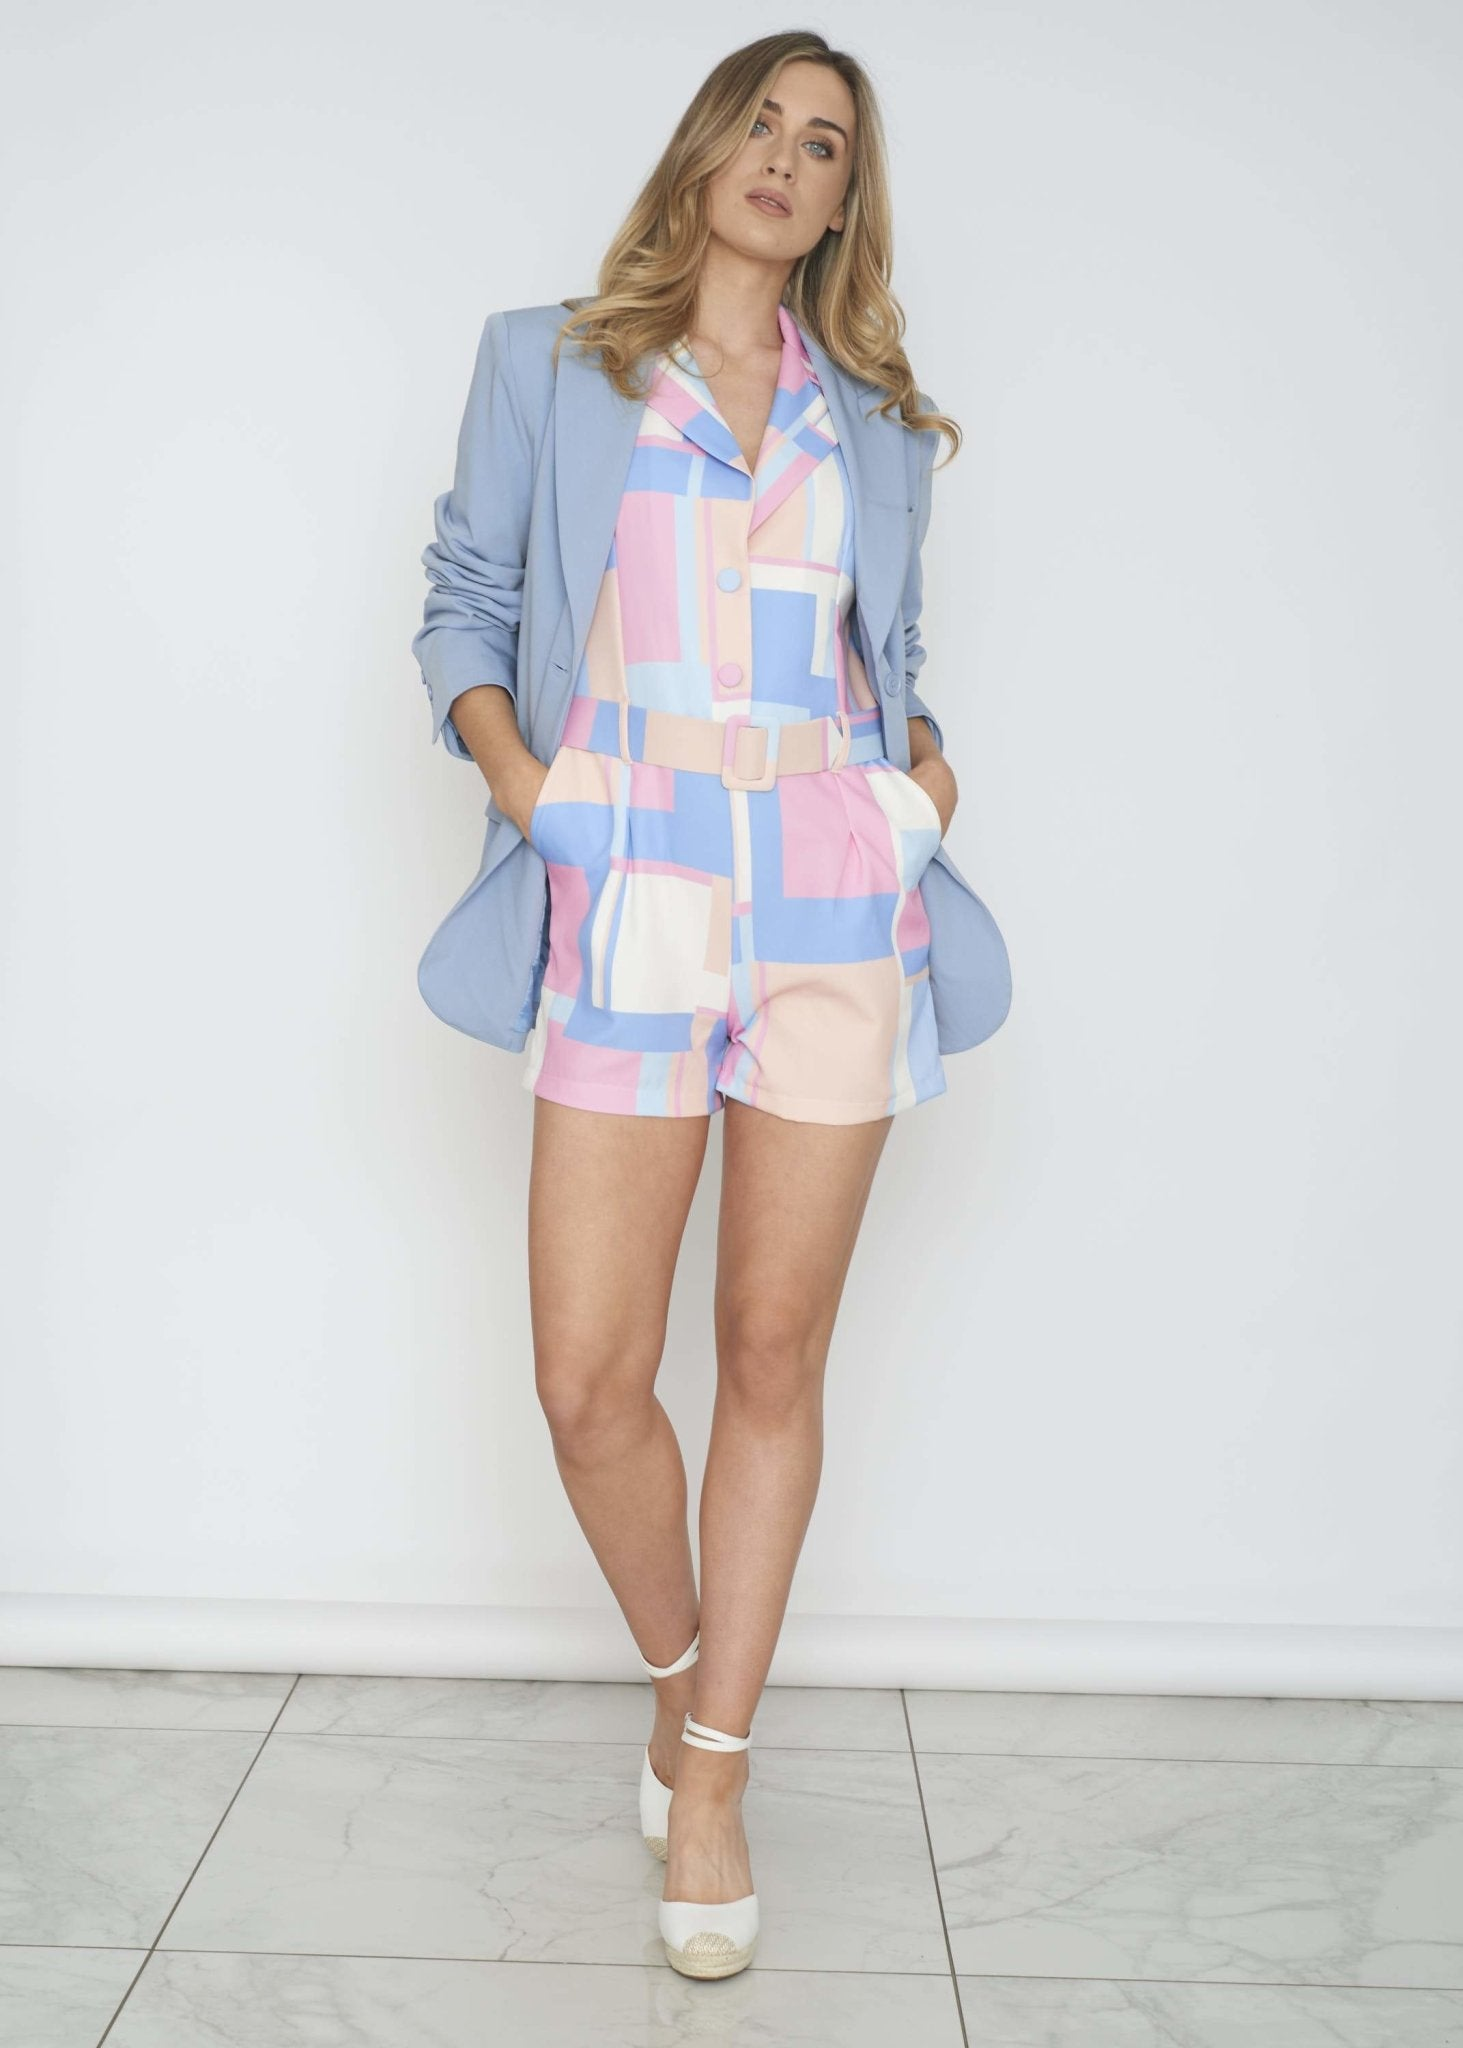 Indie Colour Block Playsuit In Blue Mix - The Walk in Wardrobe